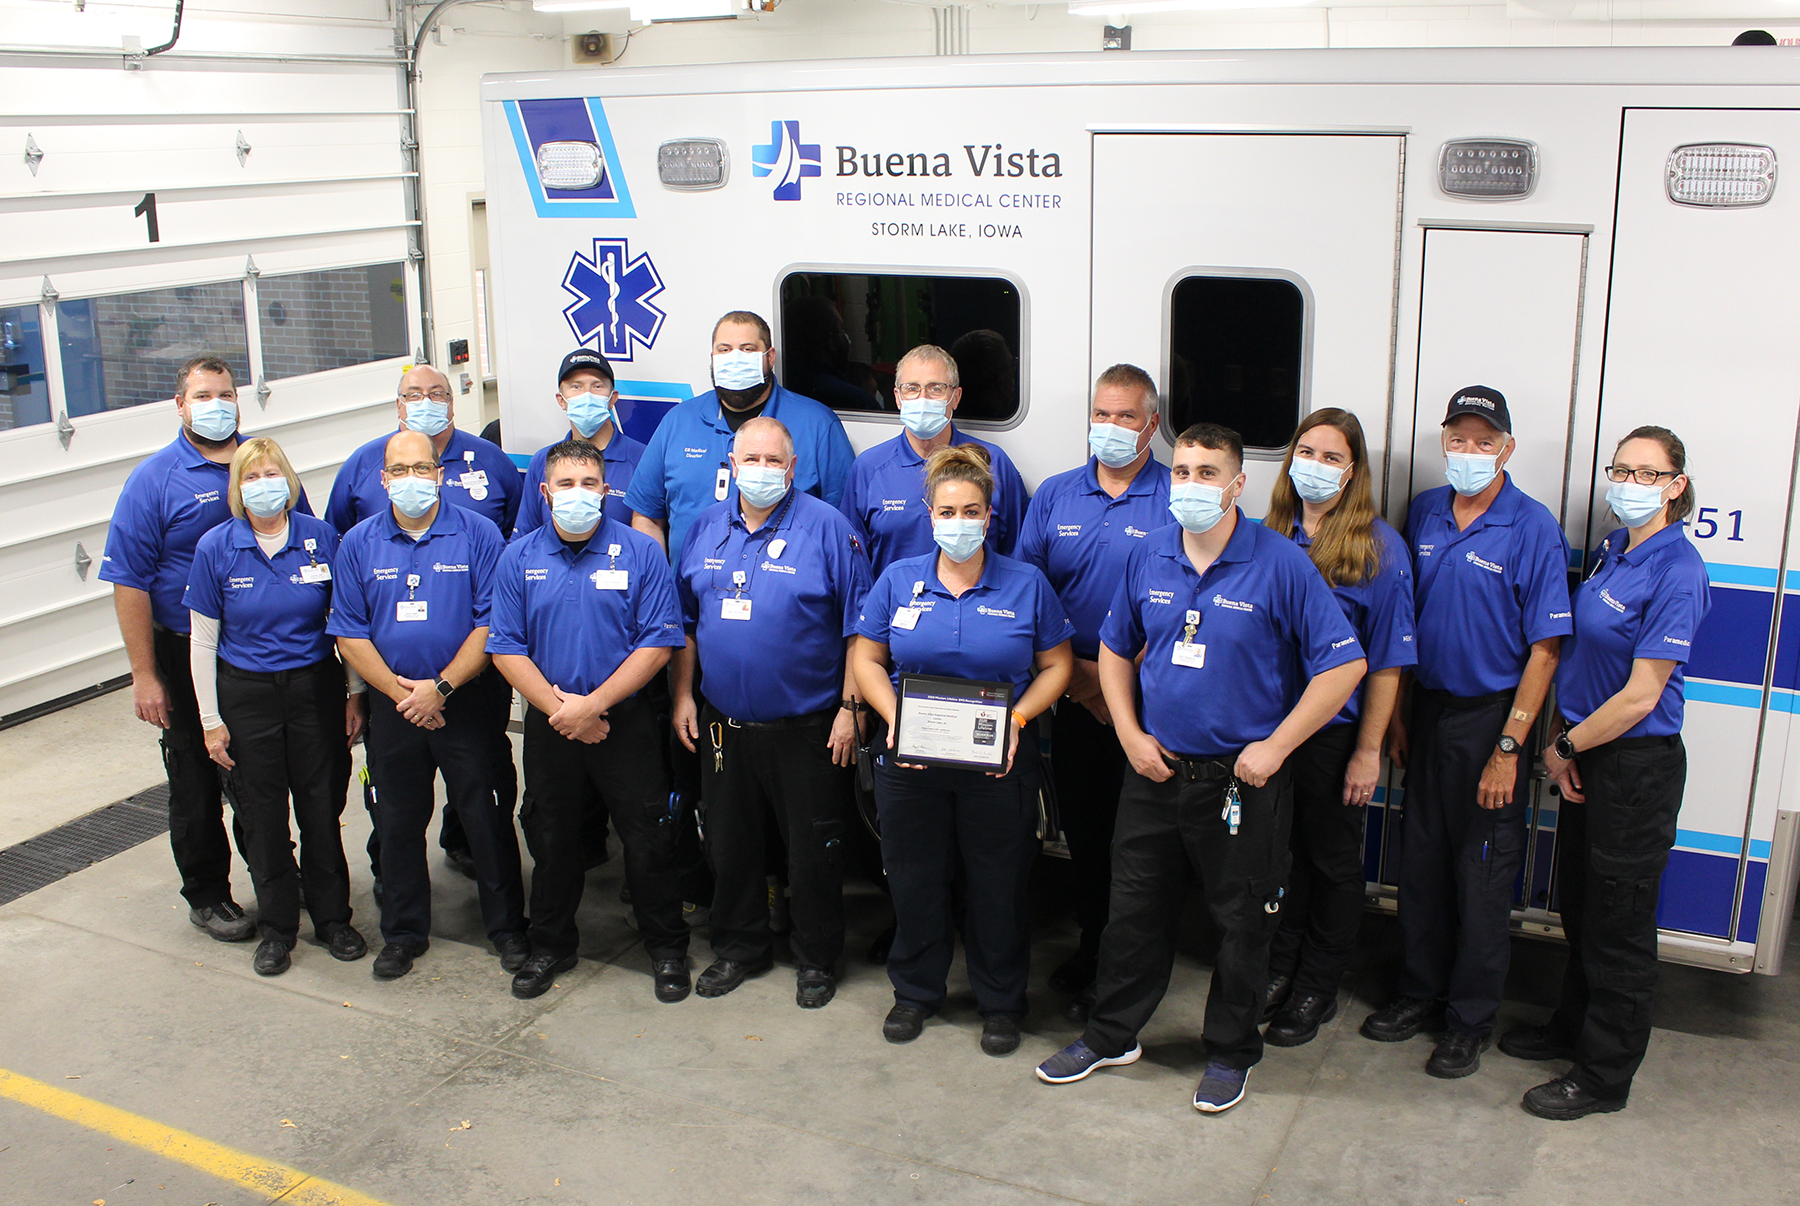 BVRMC Receives American Heart Association's Mission: Lifeline EMS Silver Plus Recognition Award.